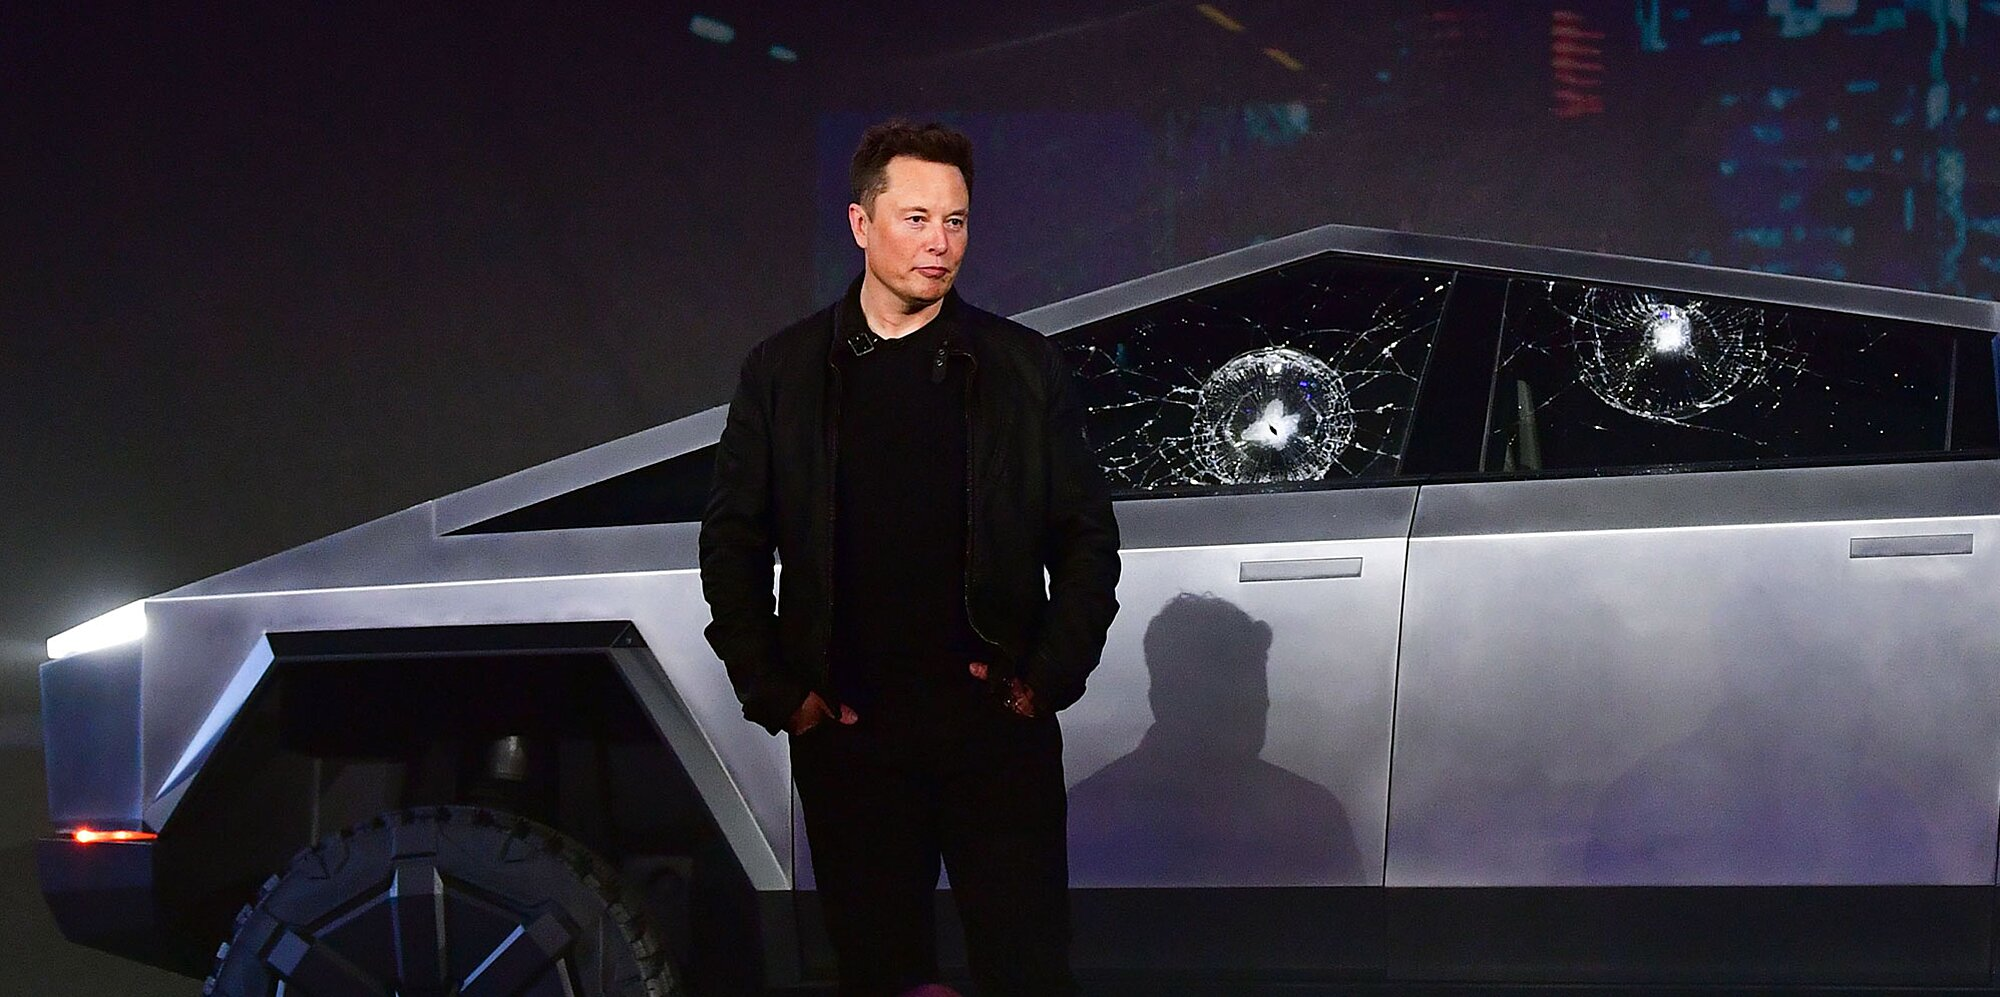 Elon Musk Says Cybertruck-Inspired 'Gigabier' Will Be Served at Tesla's German Factory